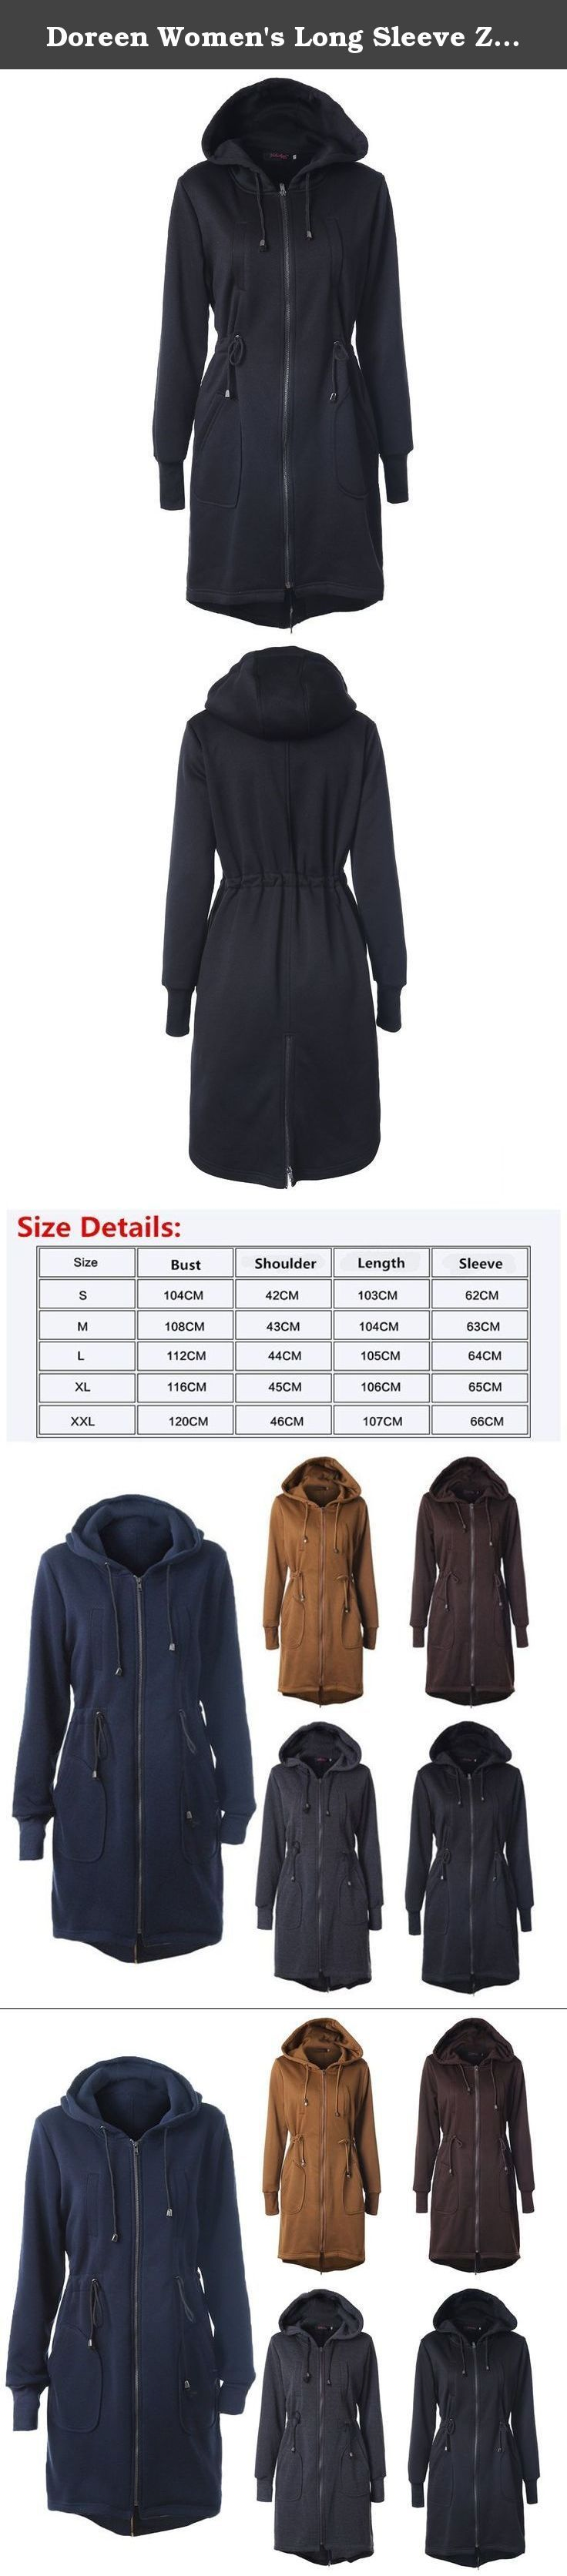 Doreen Women's Long Sleeve Zip Up Long Sweatshirt Tunic Hooded Hoodies Jacket Coat Black Size XXL. Ladies Fashion Zip up Hoodies Slim Fit Sweatshirt Jacket Coat with Pockets. Soft and Warm. You will Every Moment Comfortable Feeling. It's perfect to pair with your favorite skinny jeans or leggings for a casual everyday. Package Content: 1 x Loose Pullover Sweater Material: Fleece cloth 50% cotton / 50% polyester Item Type: Fashion Hoodies & Sweatshirts Gender: Women Clothing Length…